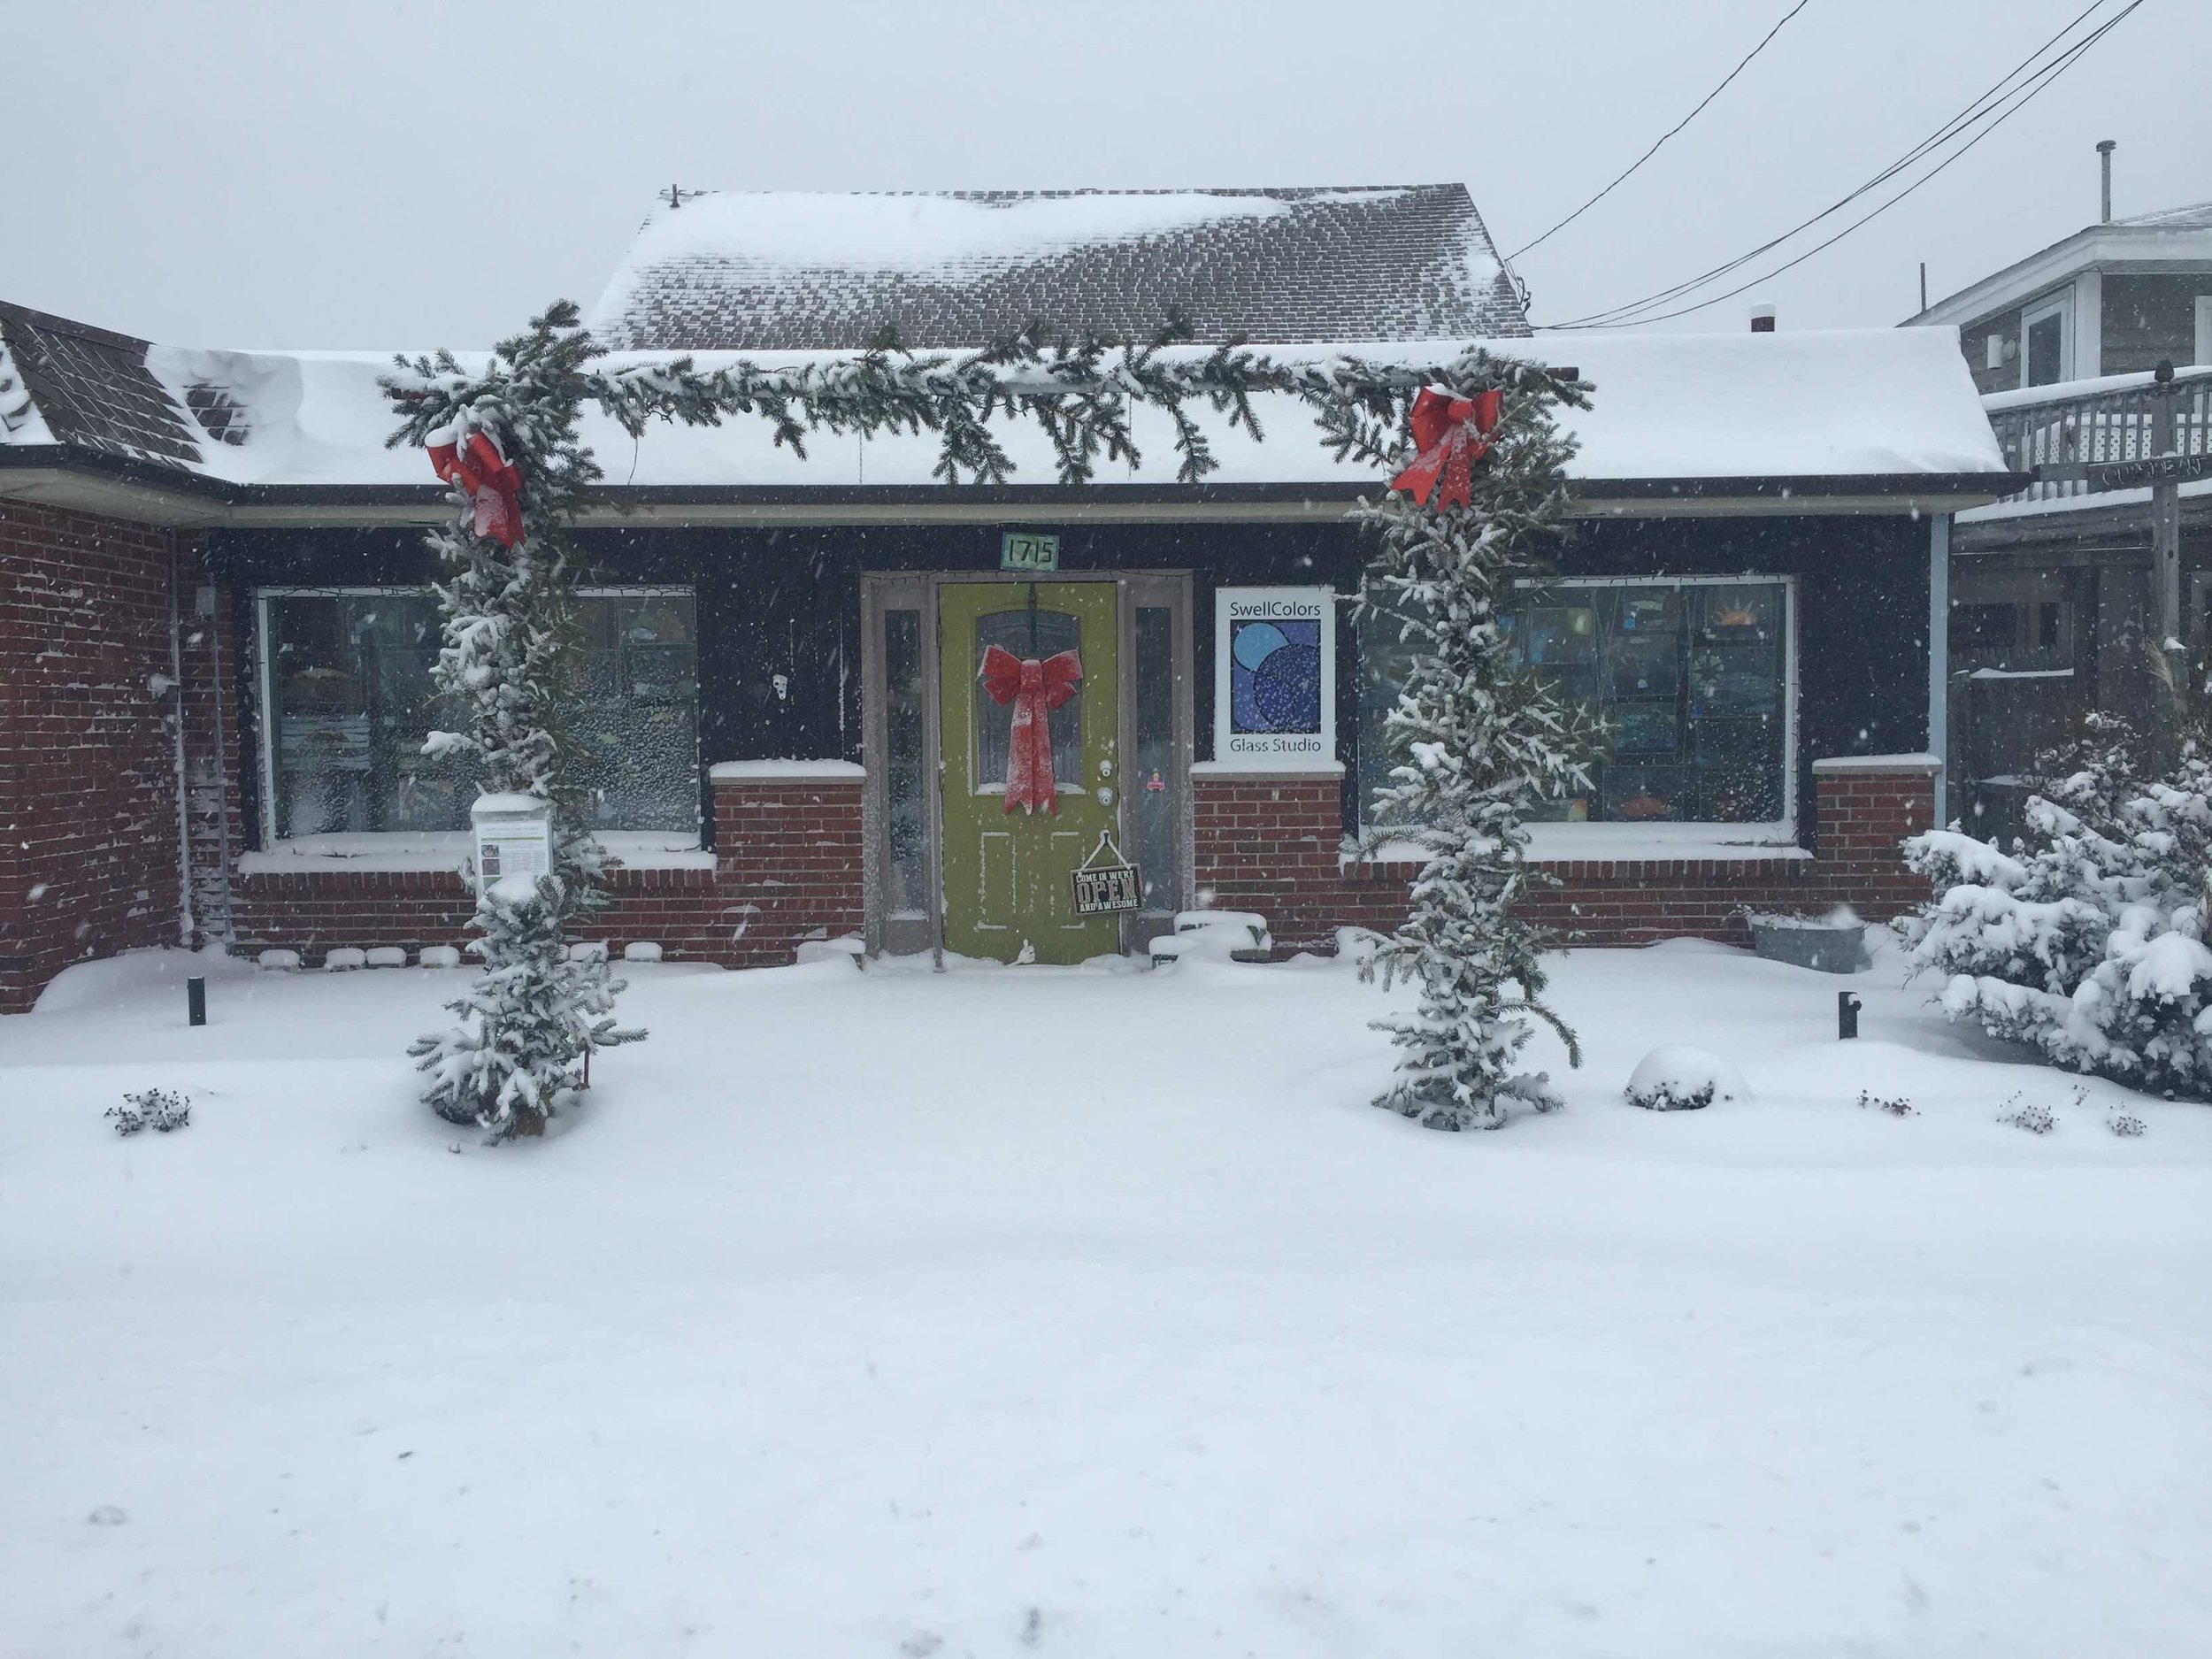 Our flagship in Surf City, SwellColors Glass Studio, looking very merry and bright in all this snow!